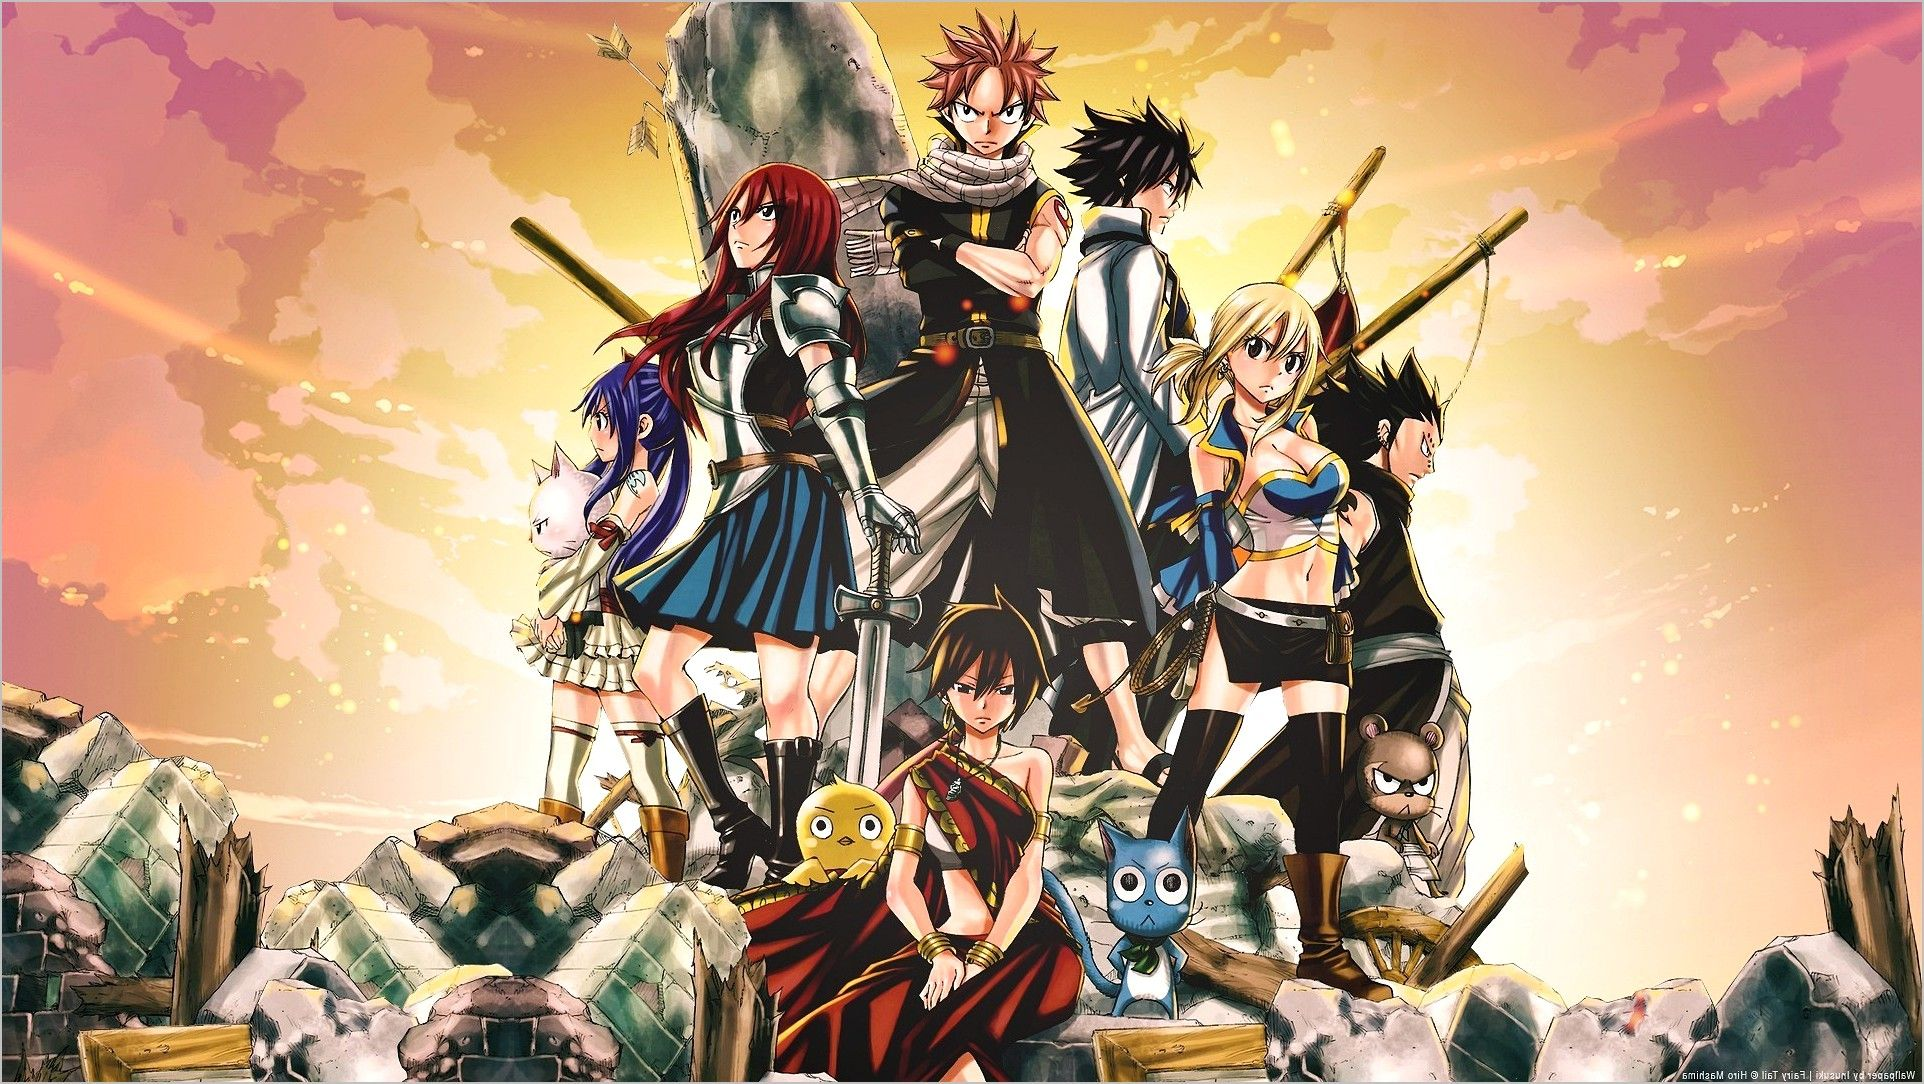 Fairy Tail 4k Wallpaper Dragon Slayers In 2020 Fairy Tail Anime Fairy Tail All Characters Fairy Tail Characters